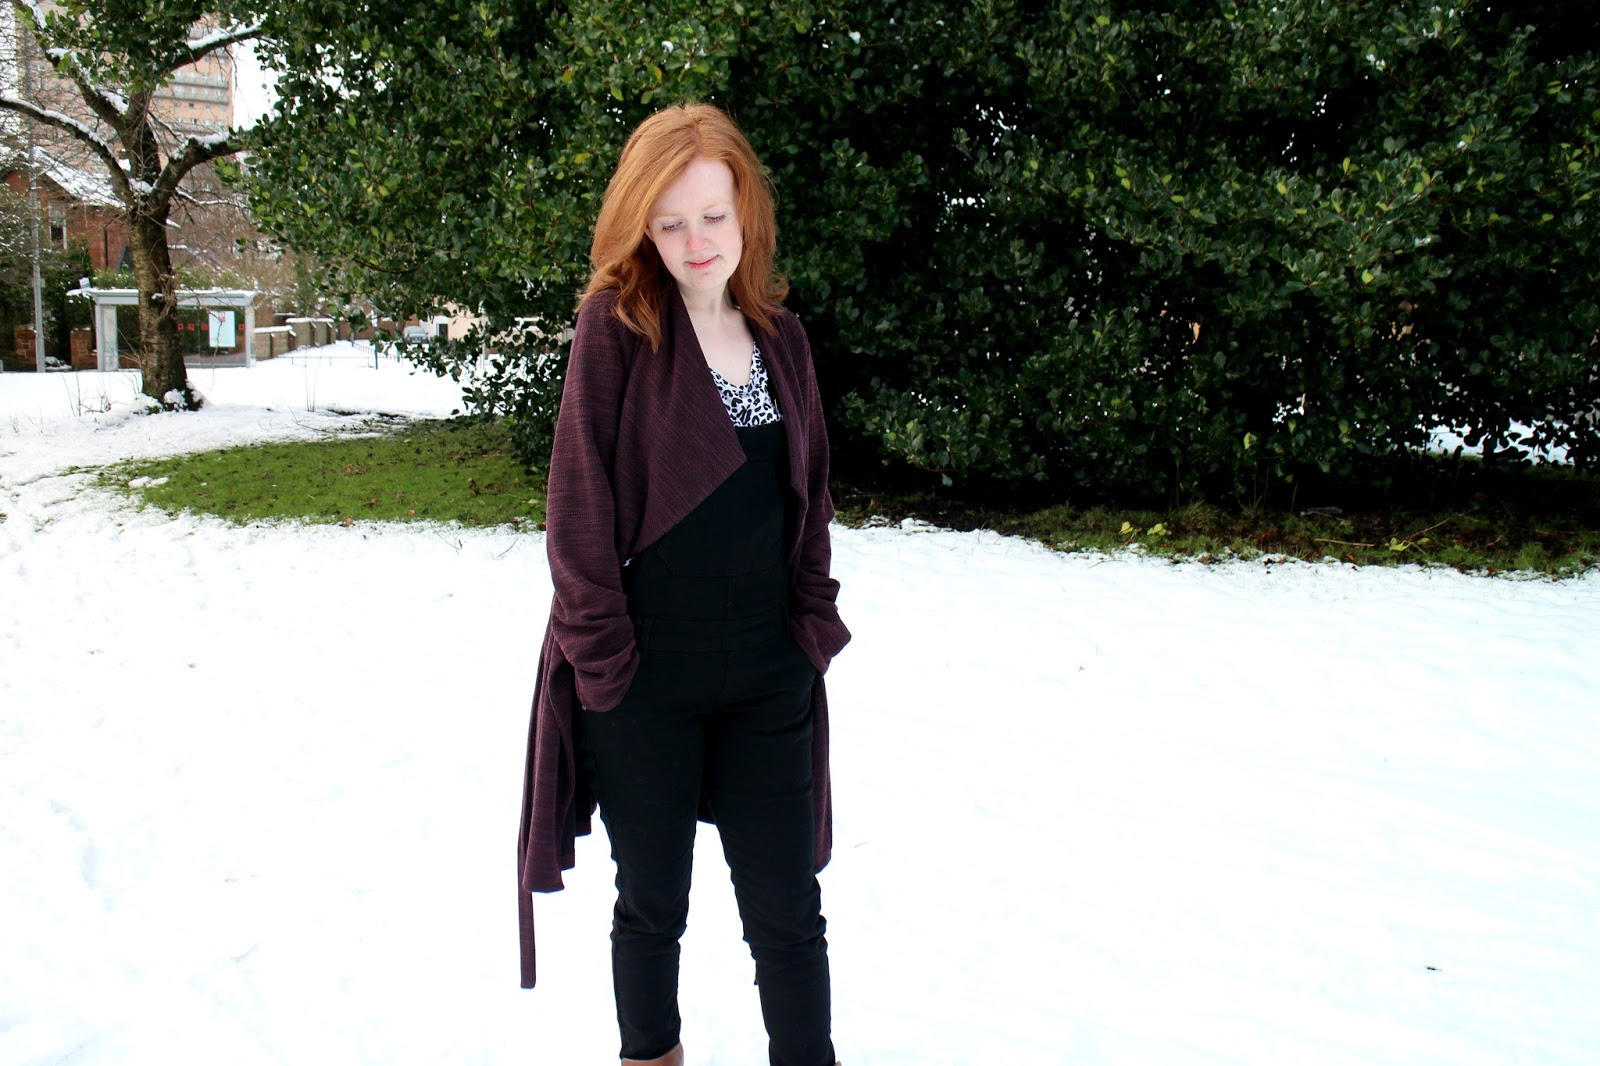 Winter Outfit Fashion Blog Post